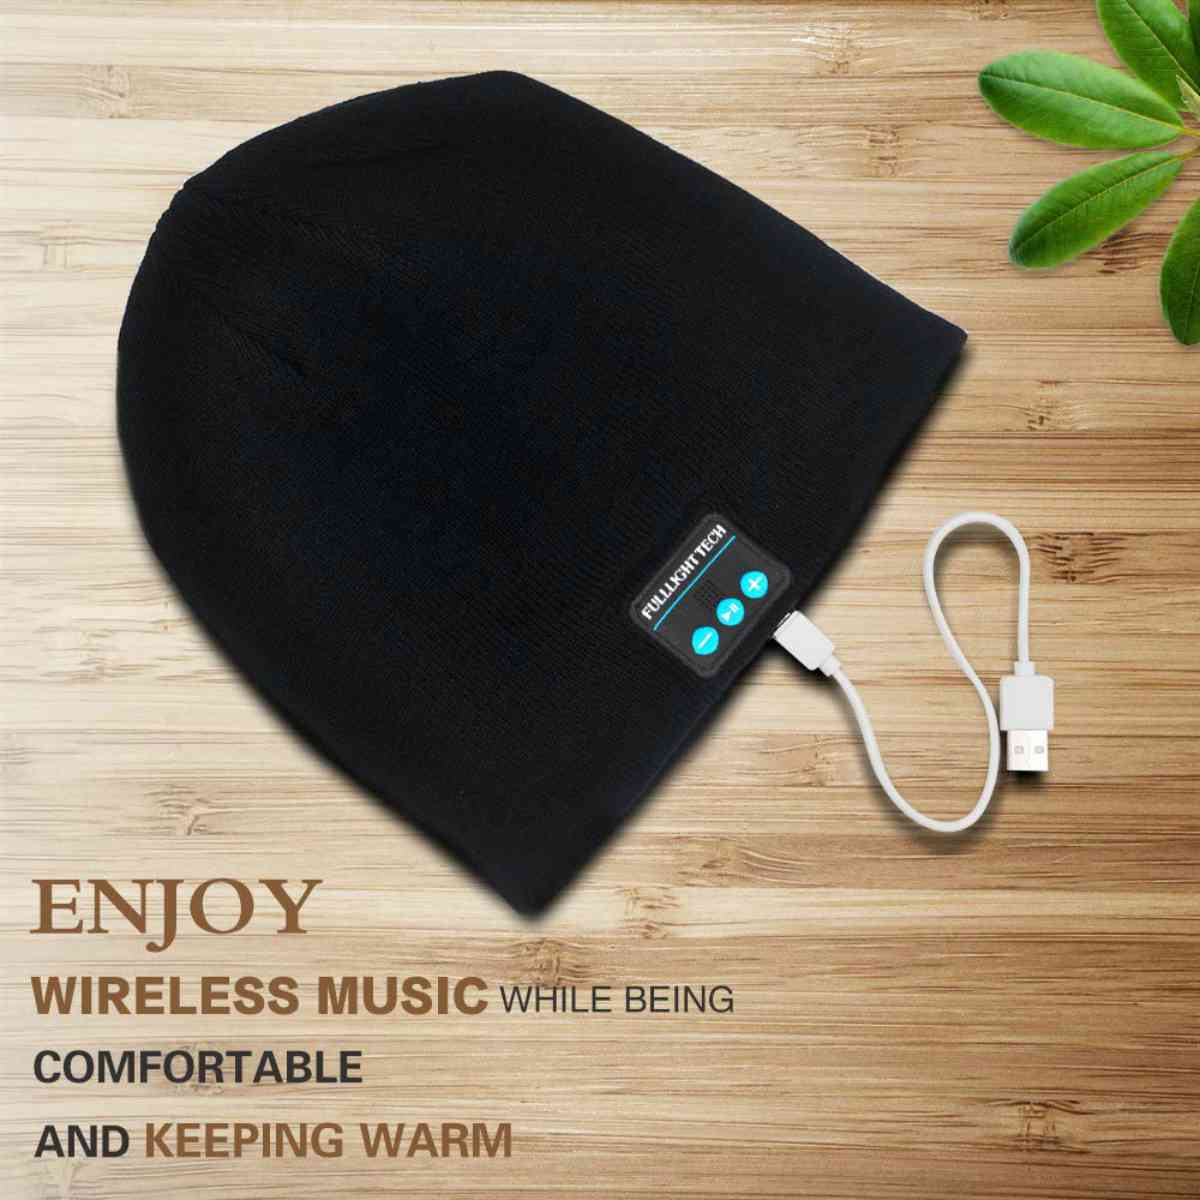 Upgraded V4.2 Bluetooth Beanie Hat Headphones Wireless Headset Winter Music Speaker | Best Low Tech Gifts Anyone Will Love